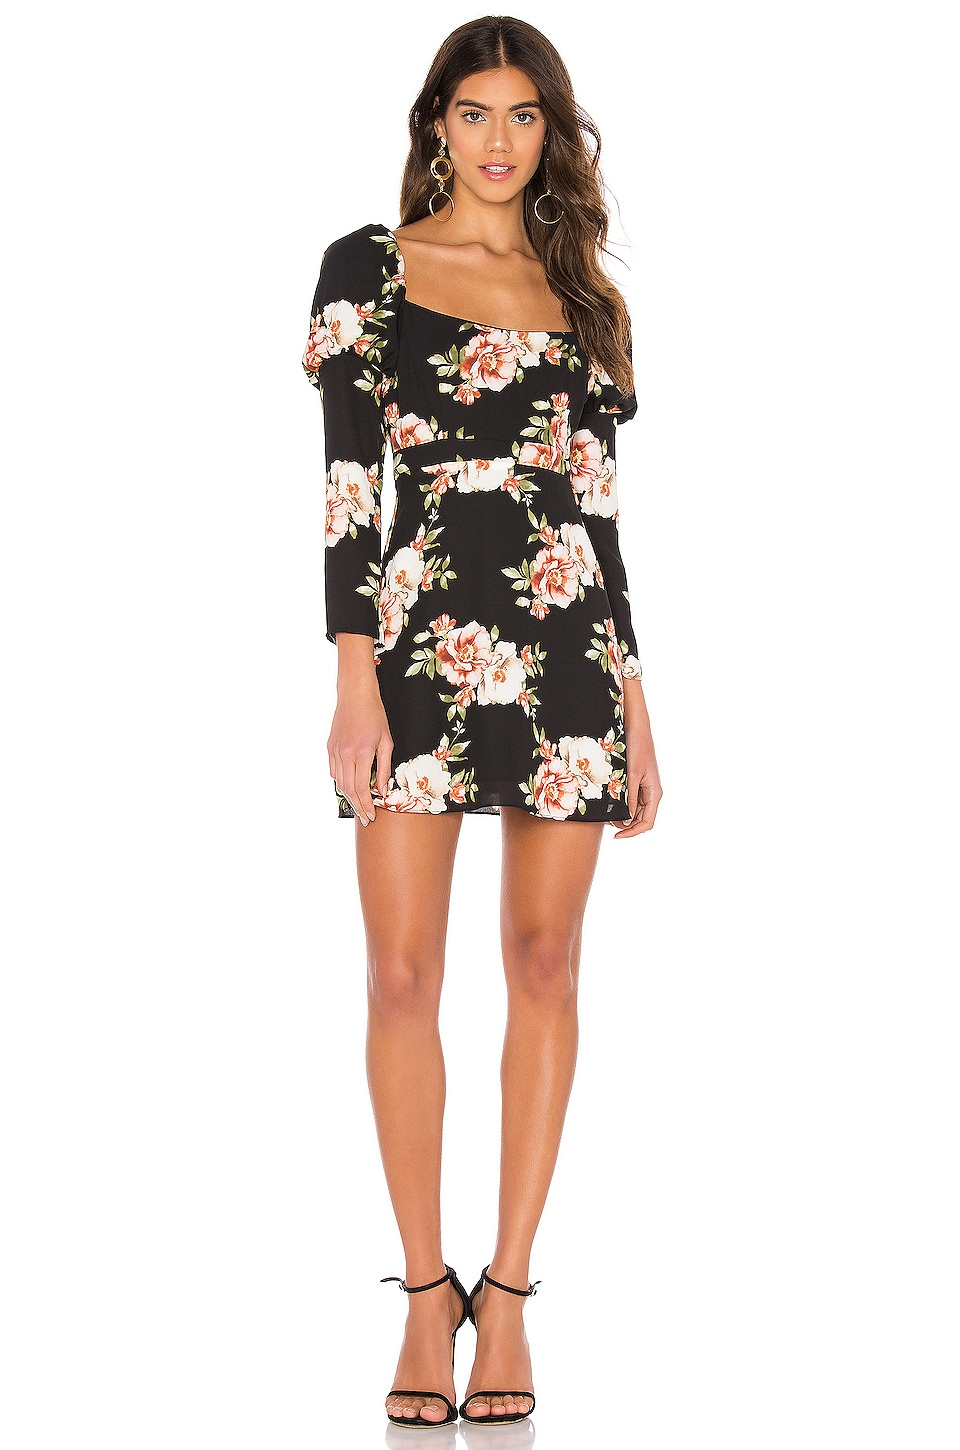 LIKELY Tara Dress in Black Multi